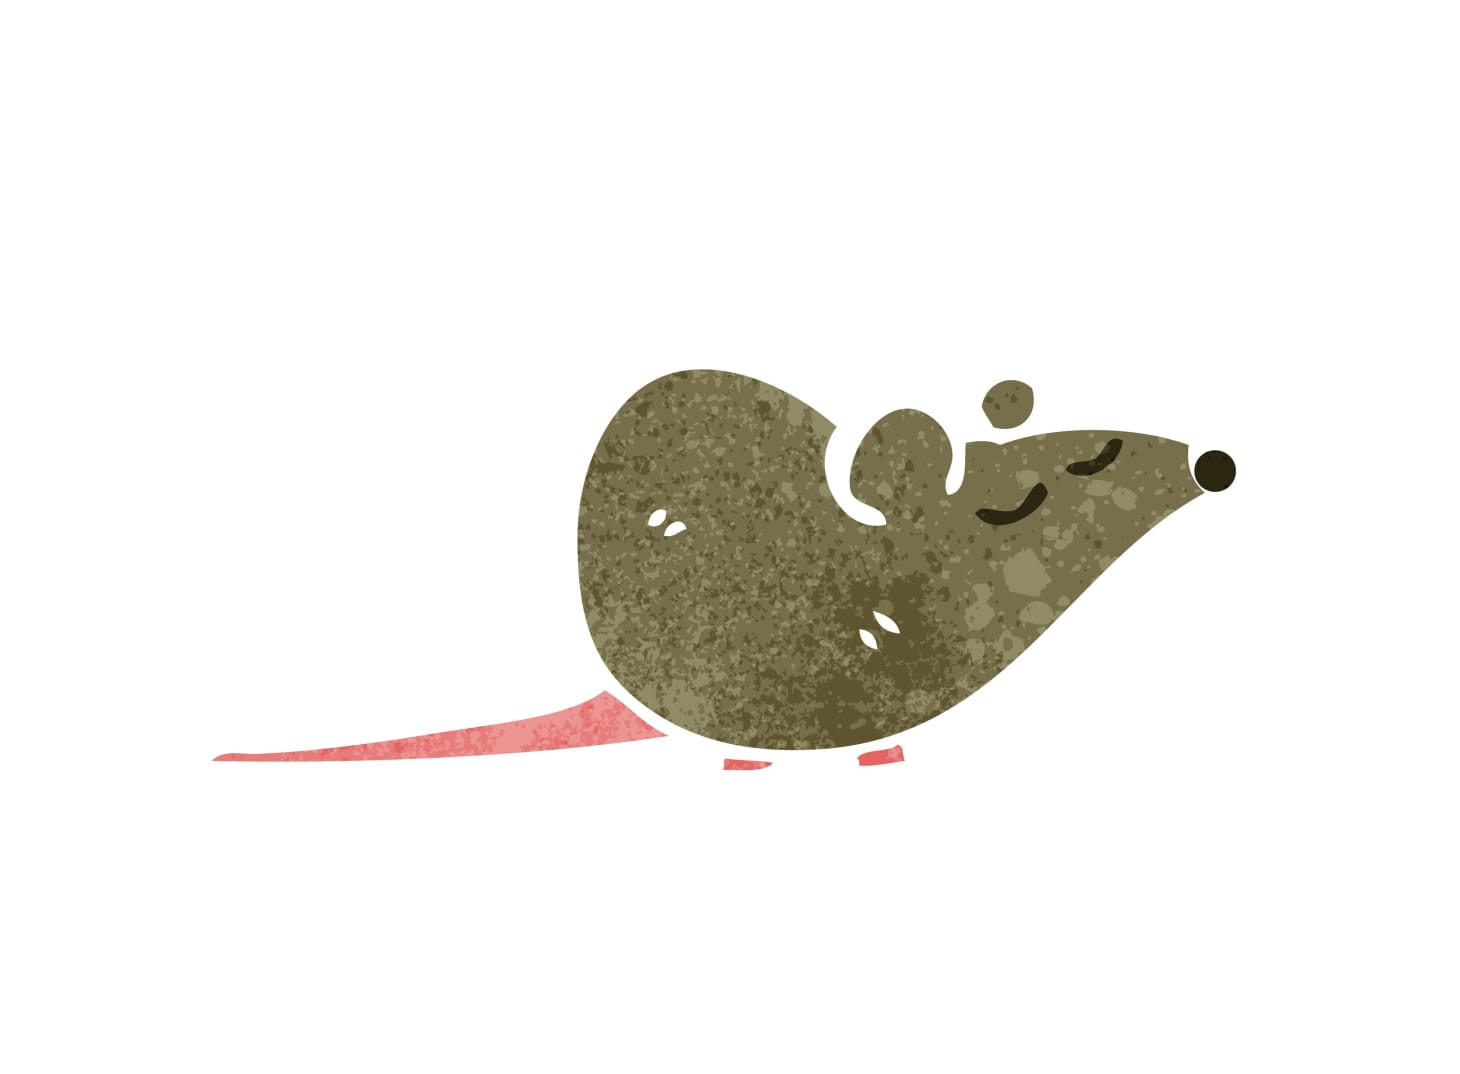 Does Peppermint Oil Keep Mice Out of the Kitchen? I Unfortunately